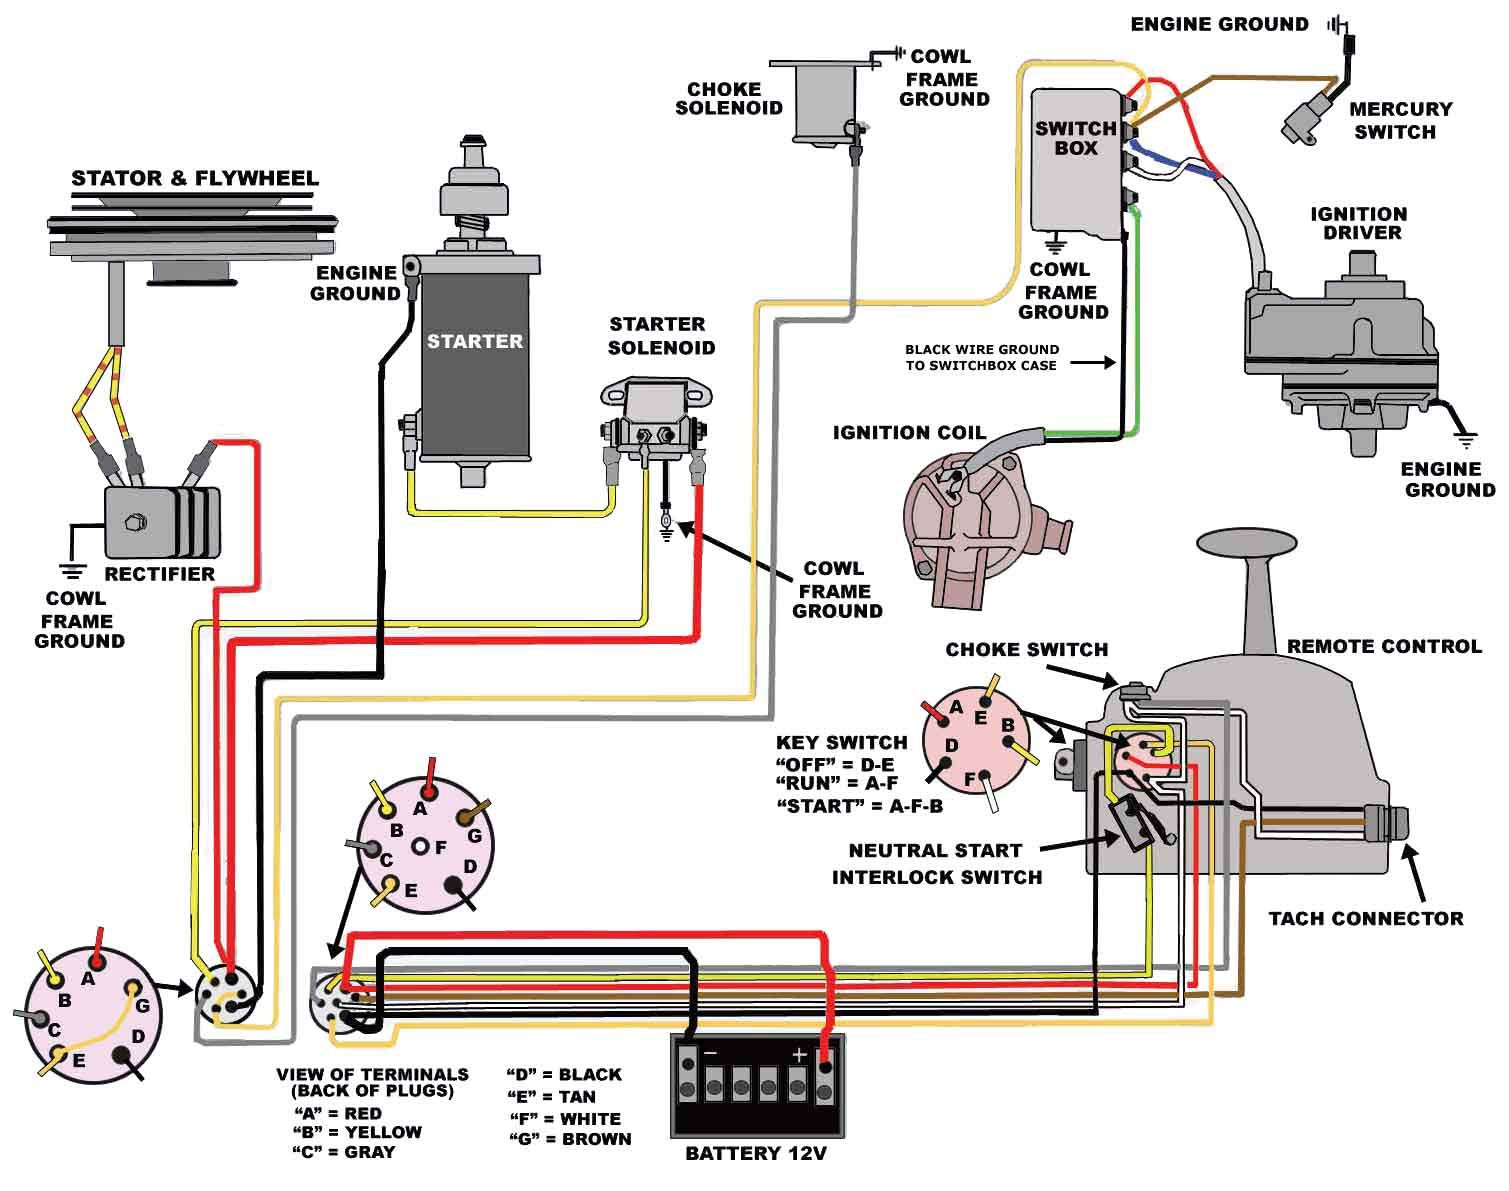 13cfb2d962bcd0c03103625817b7d51d mercury outboard wiring diagram diagram pinterest mercury boat starter wiring diagram at creativeand.co